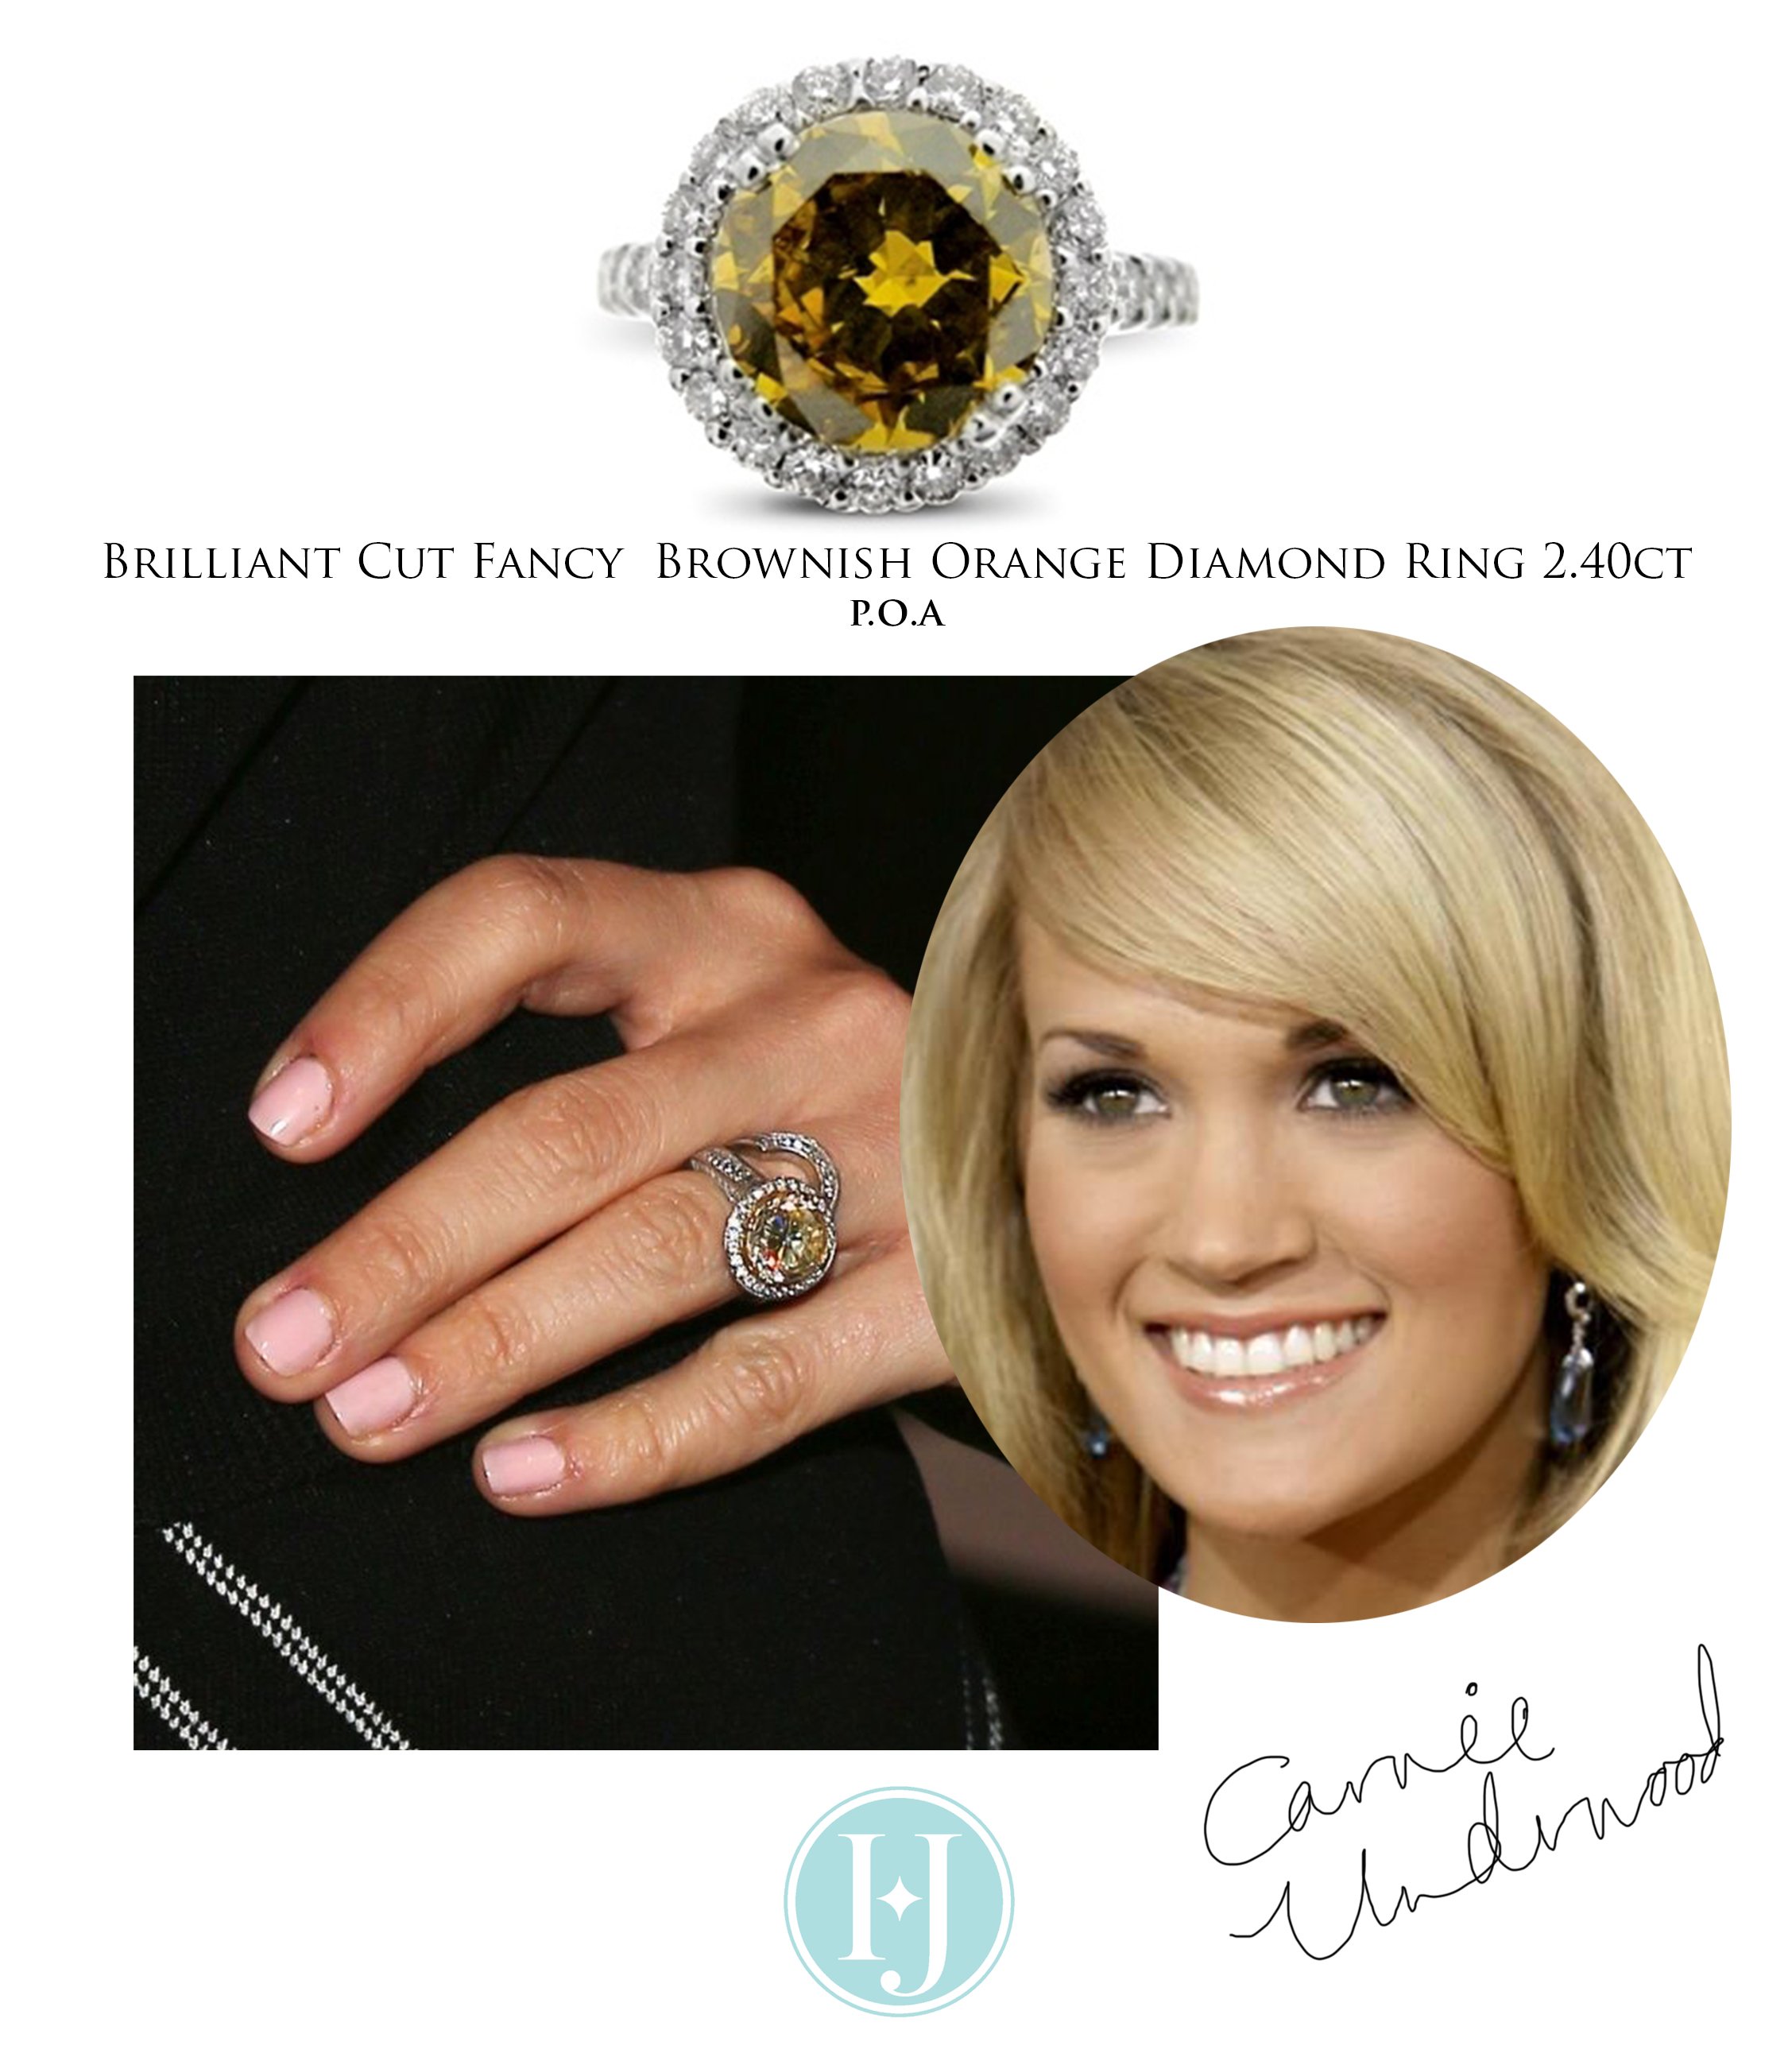 celebrity celeberity the rings cost in most tacky engagement uk expensive size full halo wedding of fantasy are world beyonce ring unique replicas